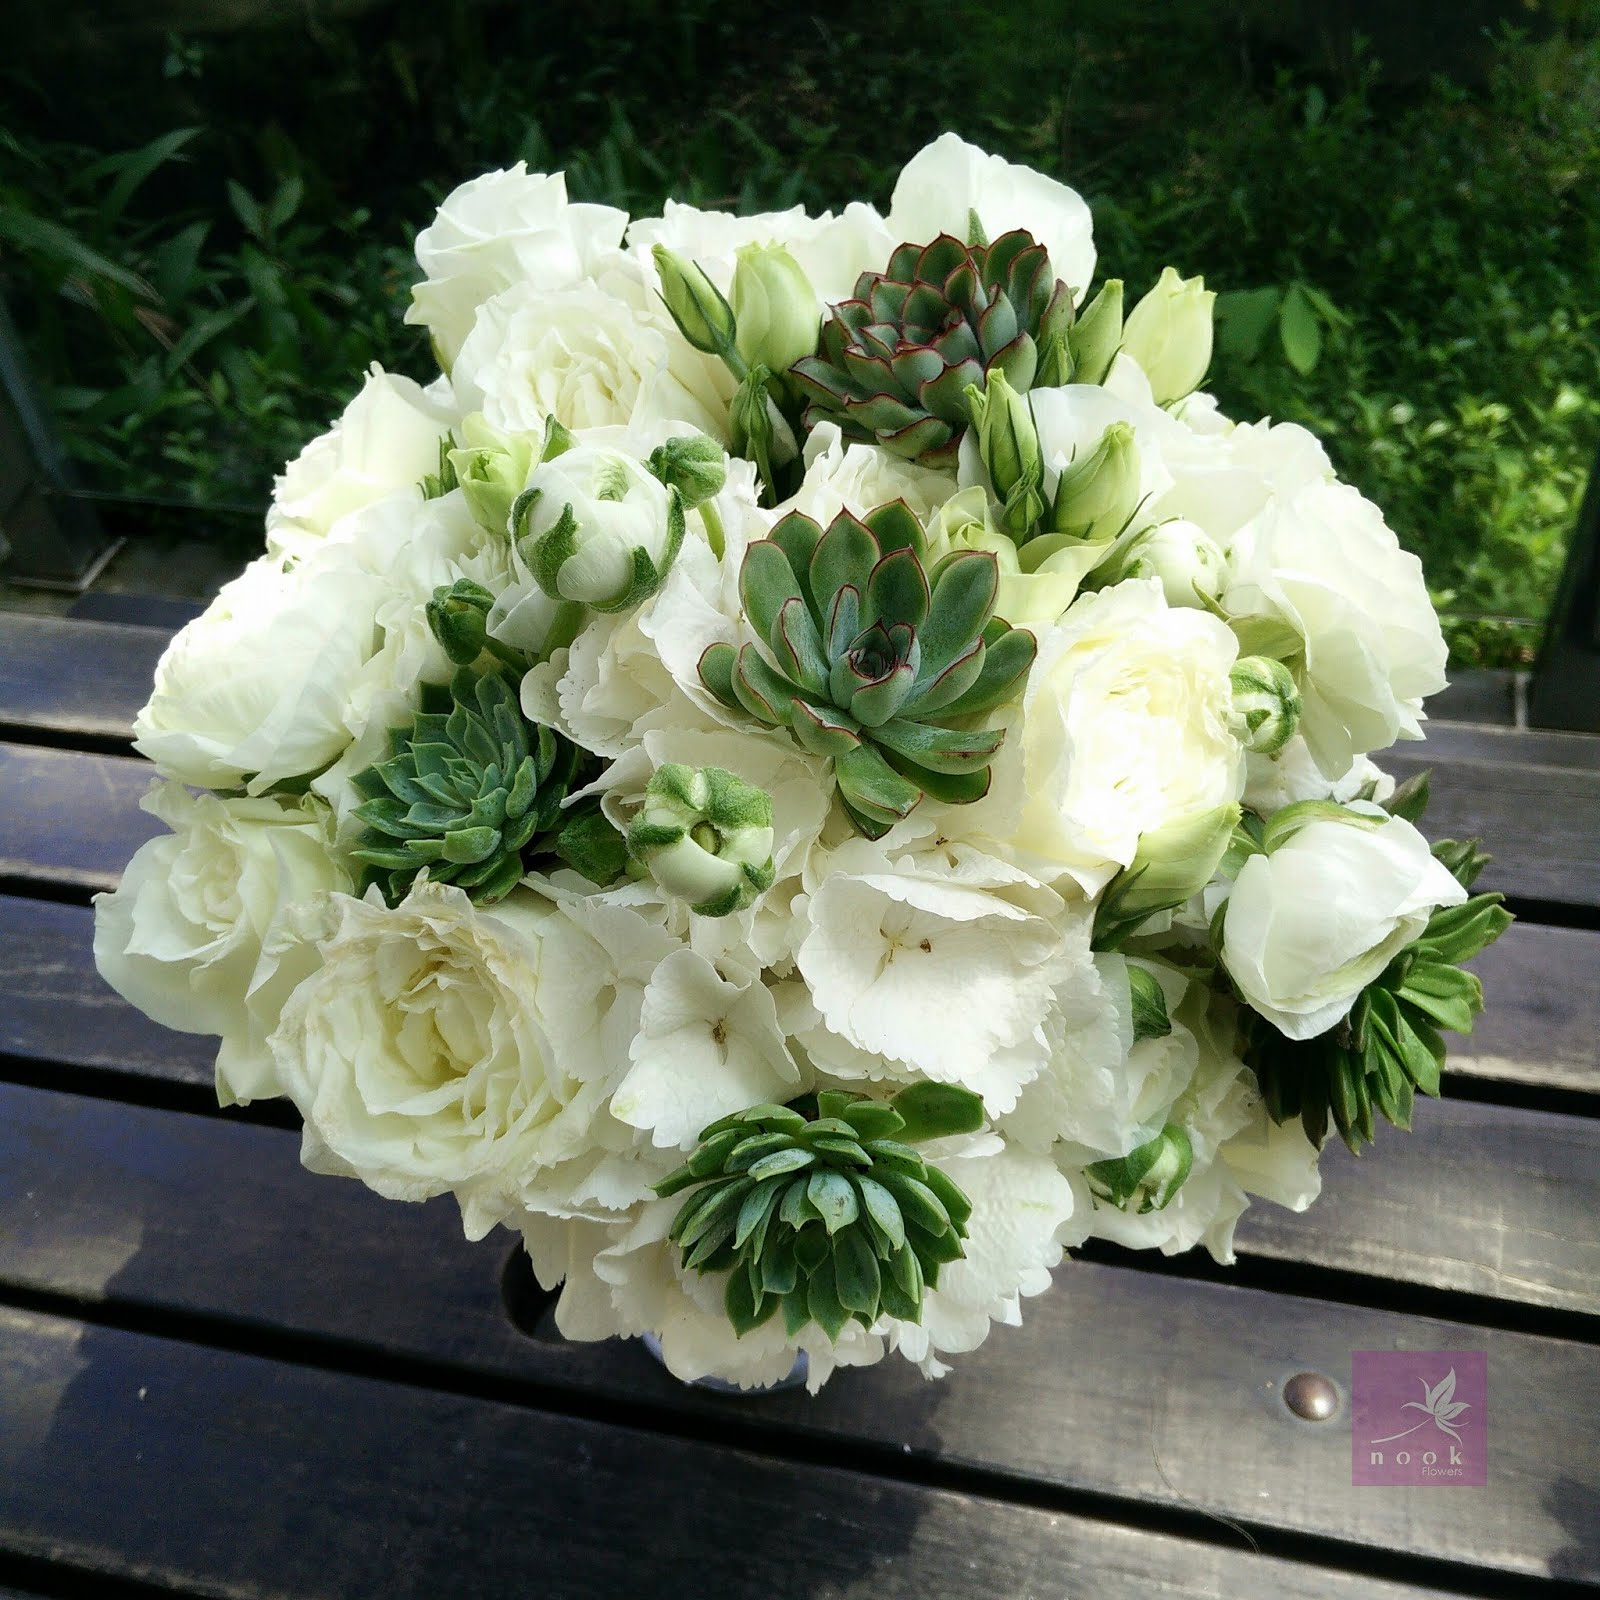 Nook Flowers A White And Succulent Wedding